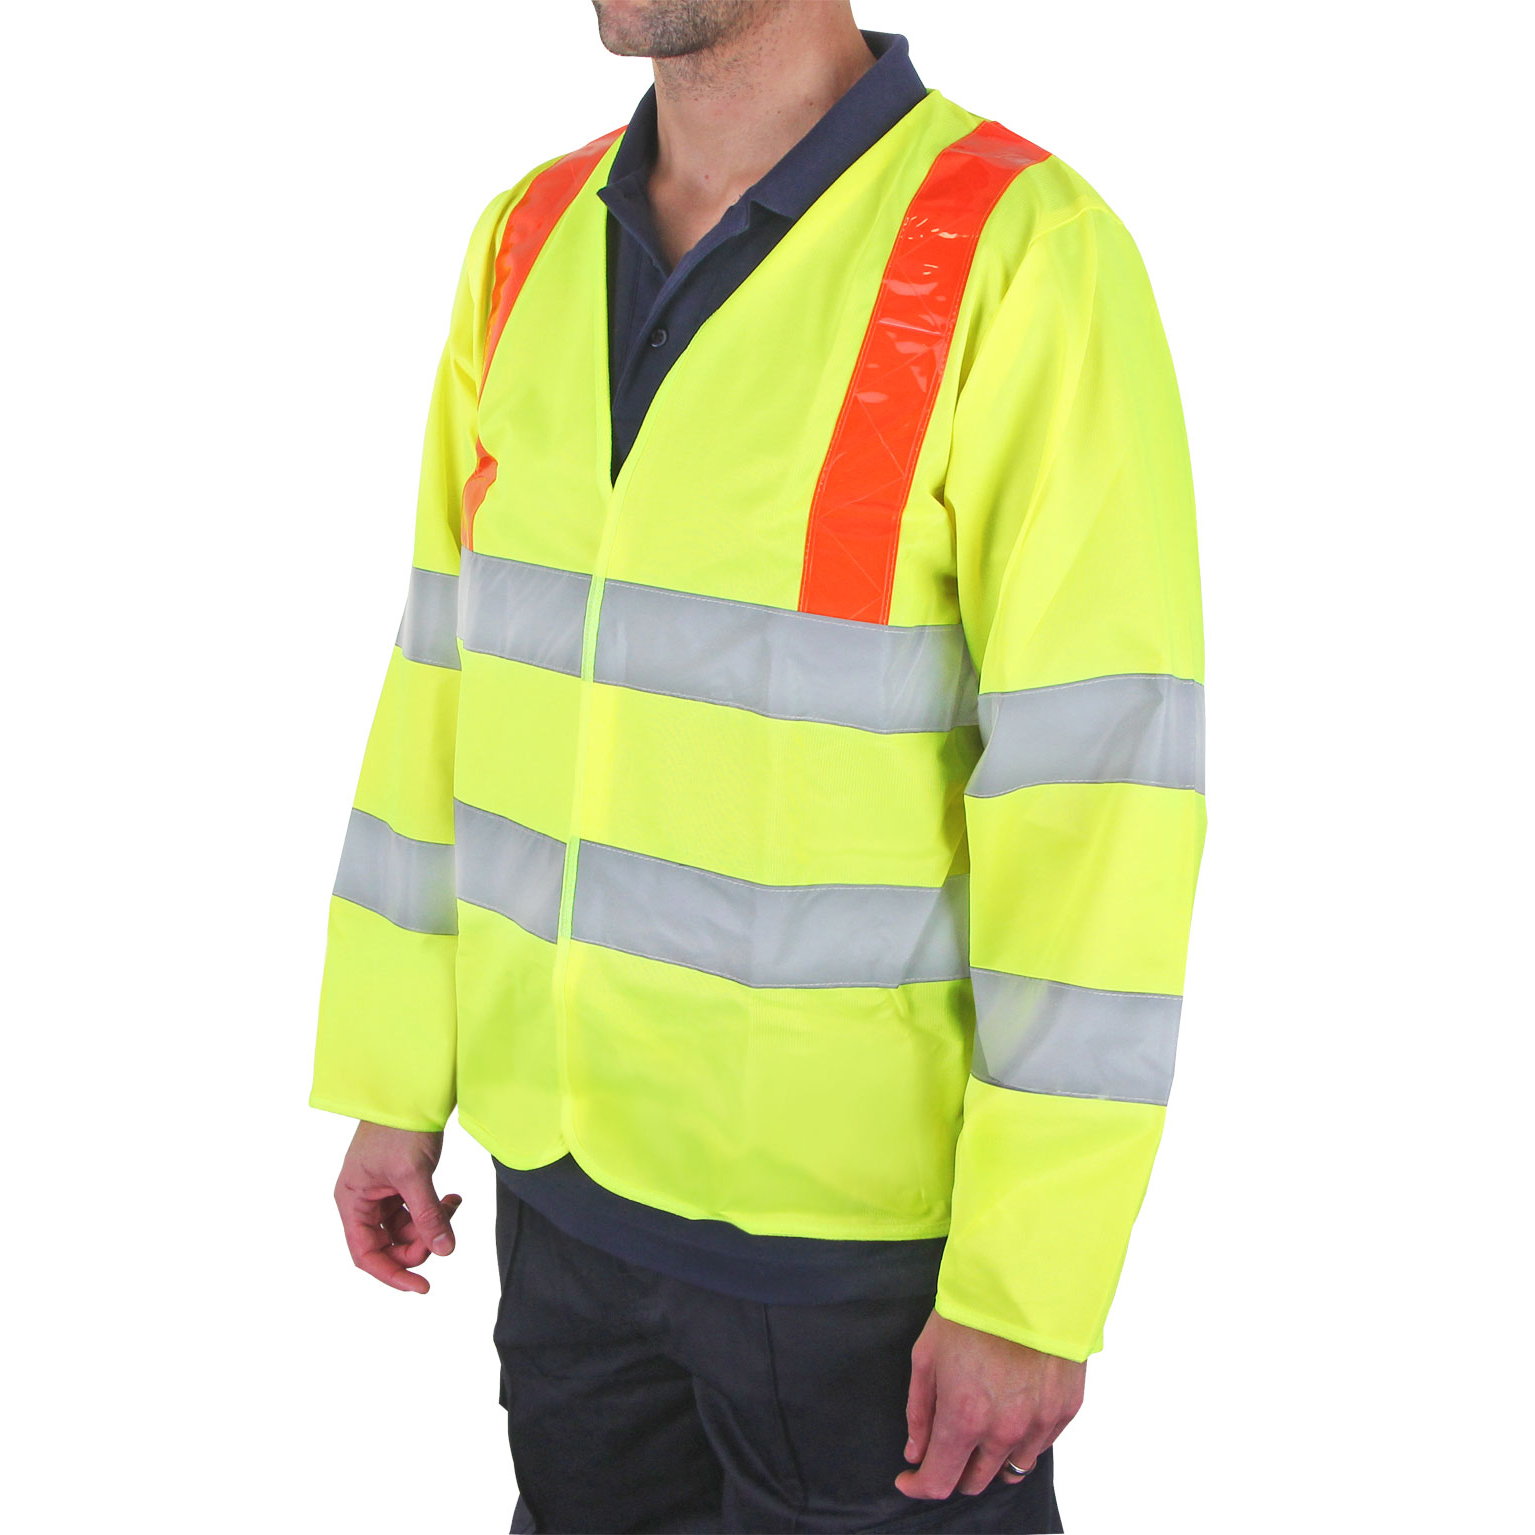 Jerkins B-Seen High Visibility Long Sleeved Jerkin 2XL Saturn Yellow/Red Ref PKJENG(RT)XXL *Up to 3 Day Leadtime*